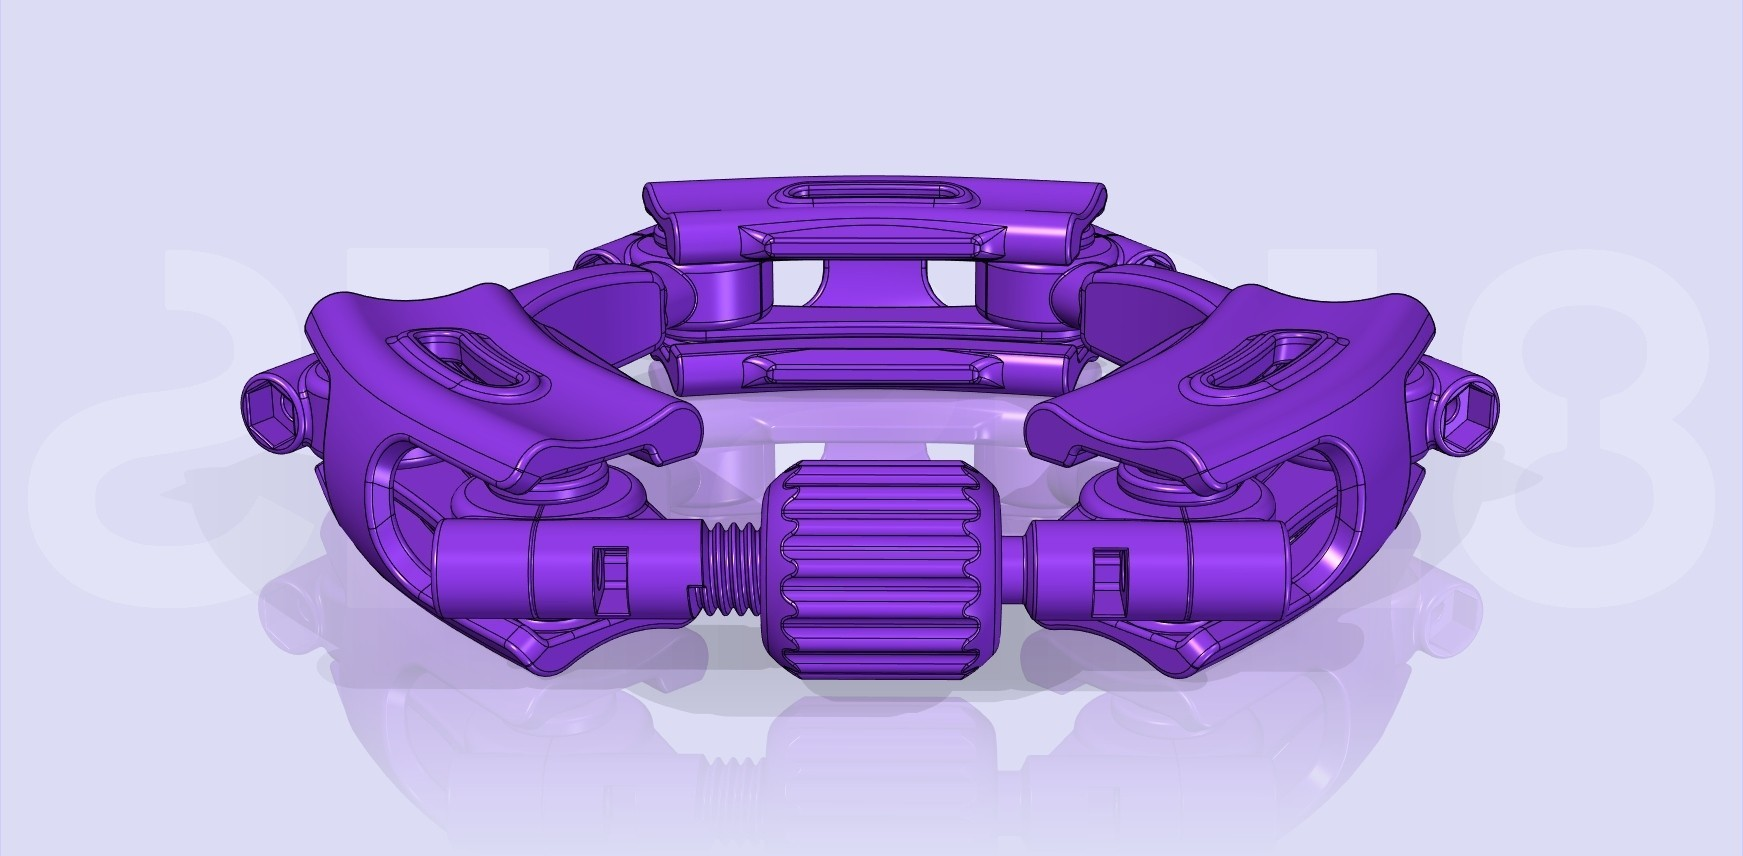 Chain Clamps 2.jpg Download free STL file Chain Clamps • 3D printable model, SE_2018